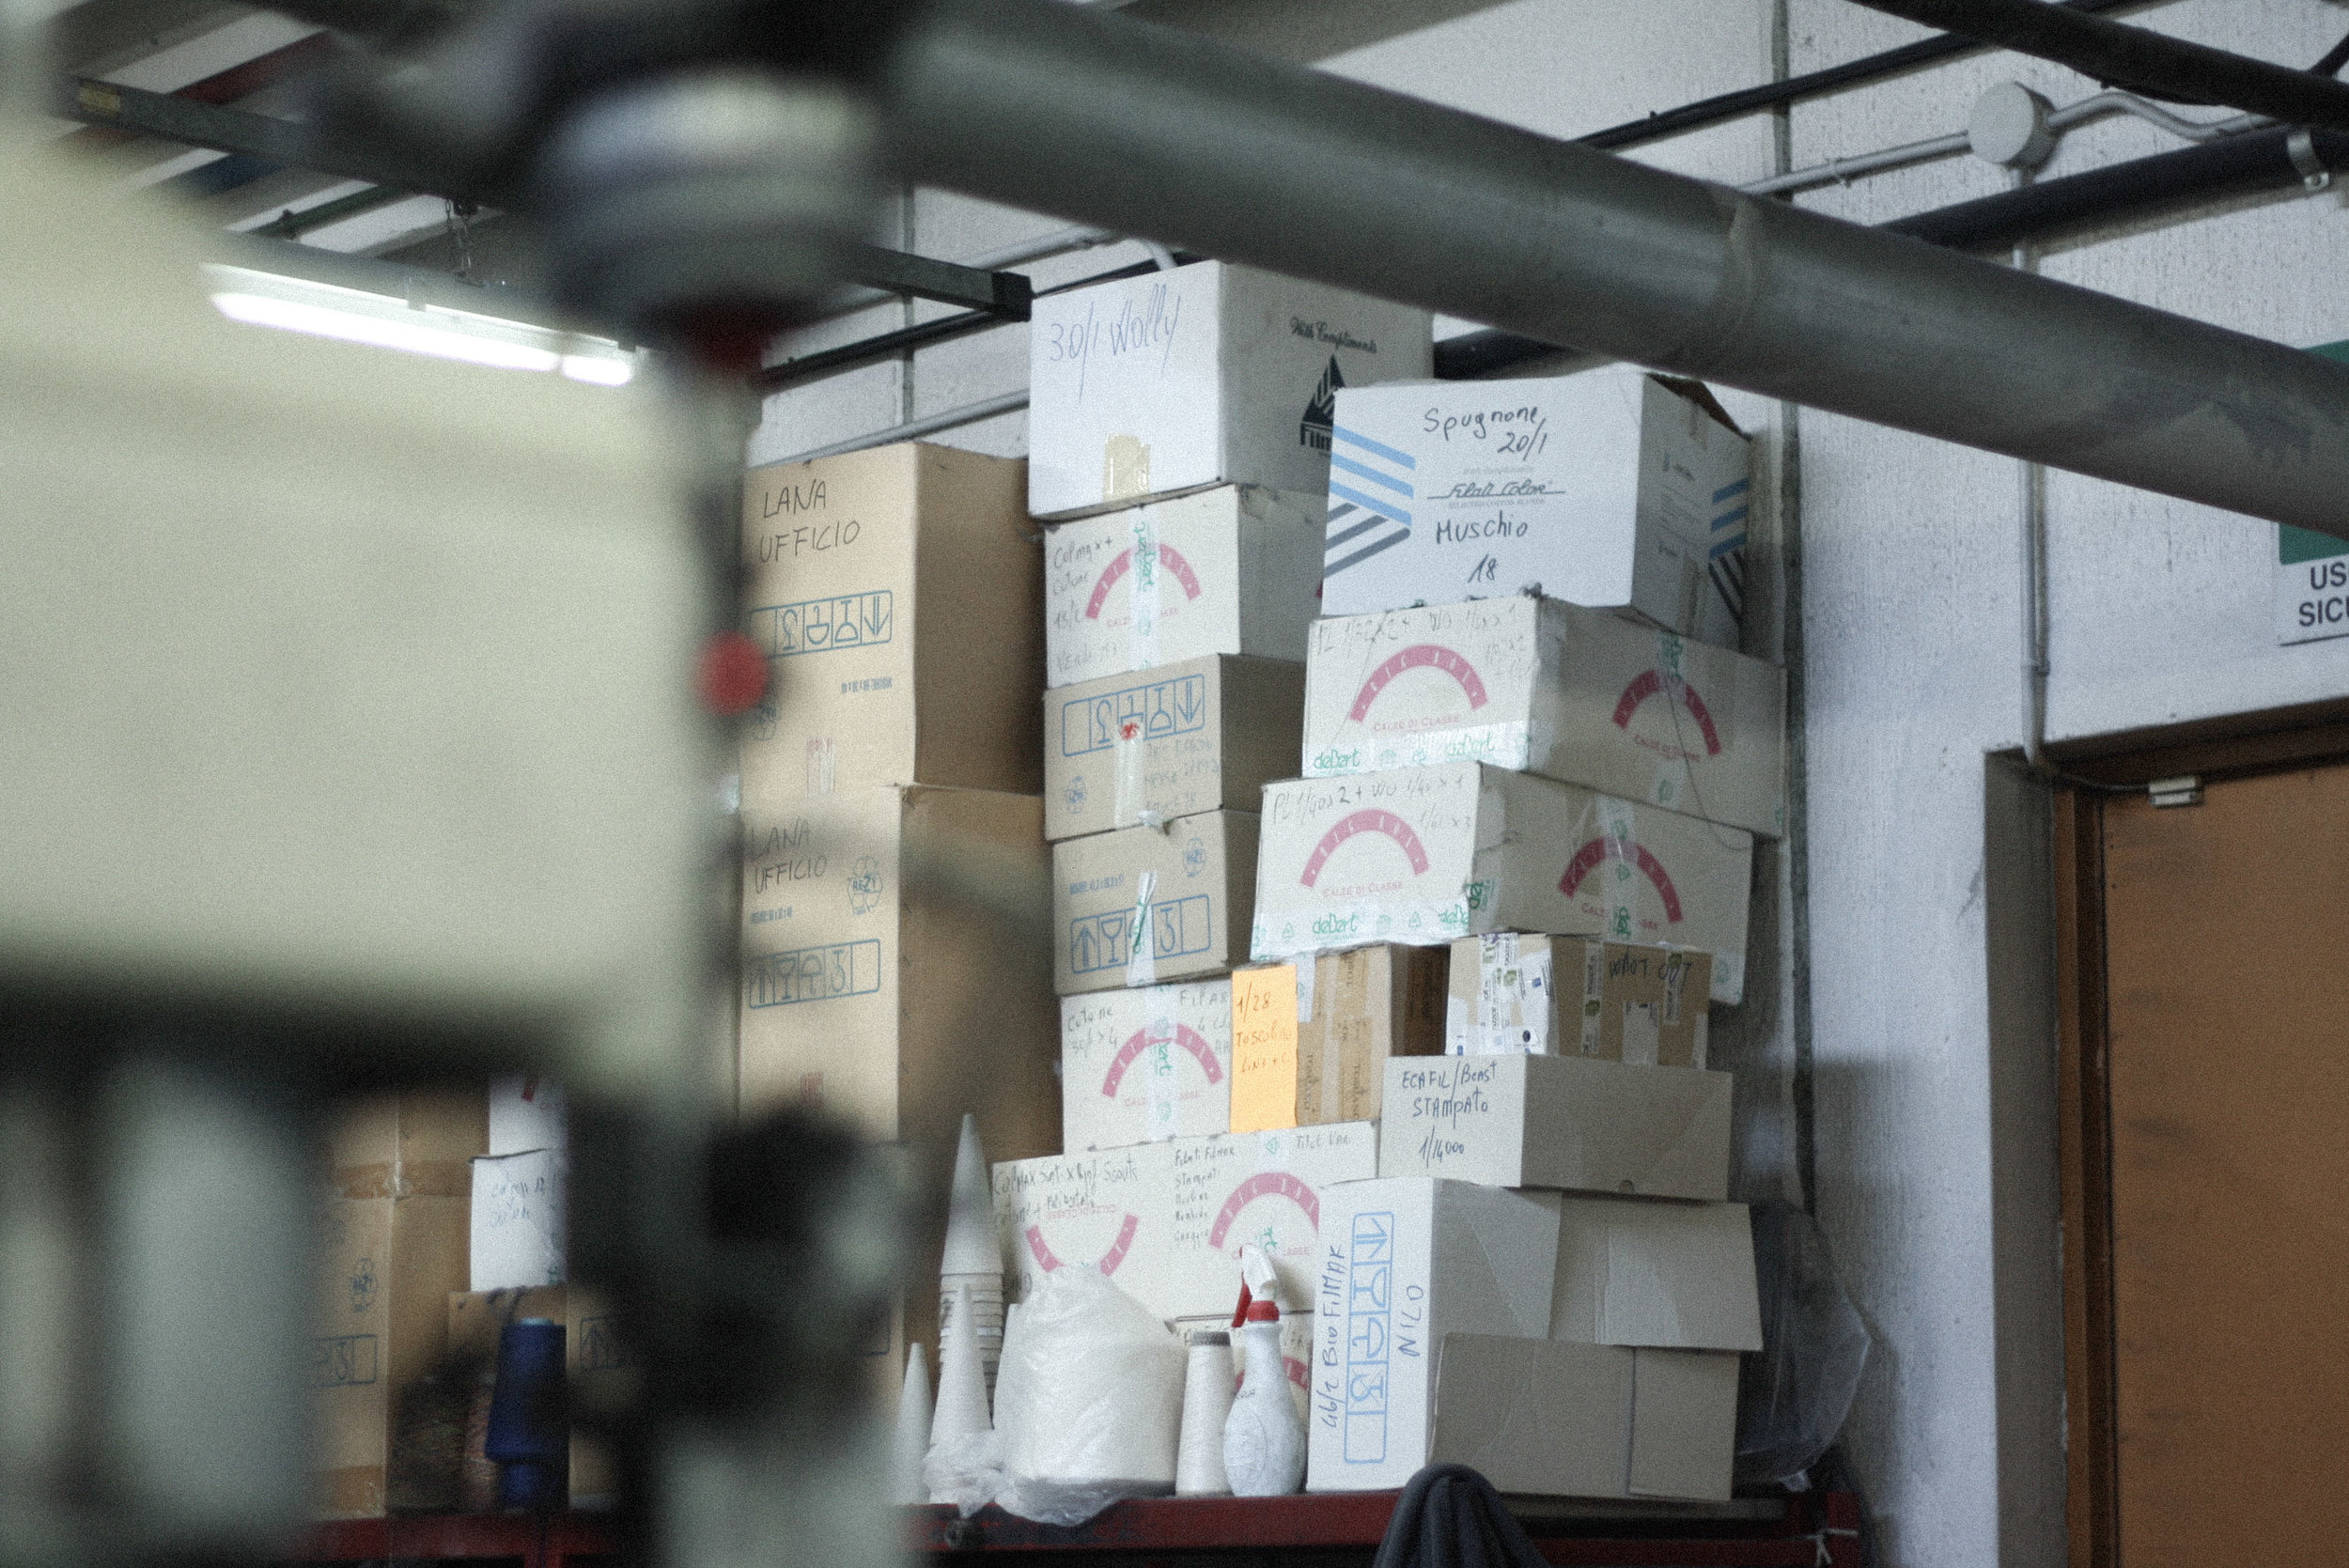 A Woven Plane – sustainable fashion for women, socks made in Italy – visiting the Italian factory where our socks are made - boxes